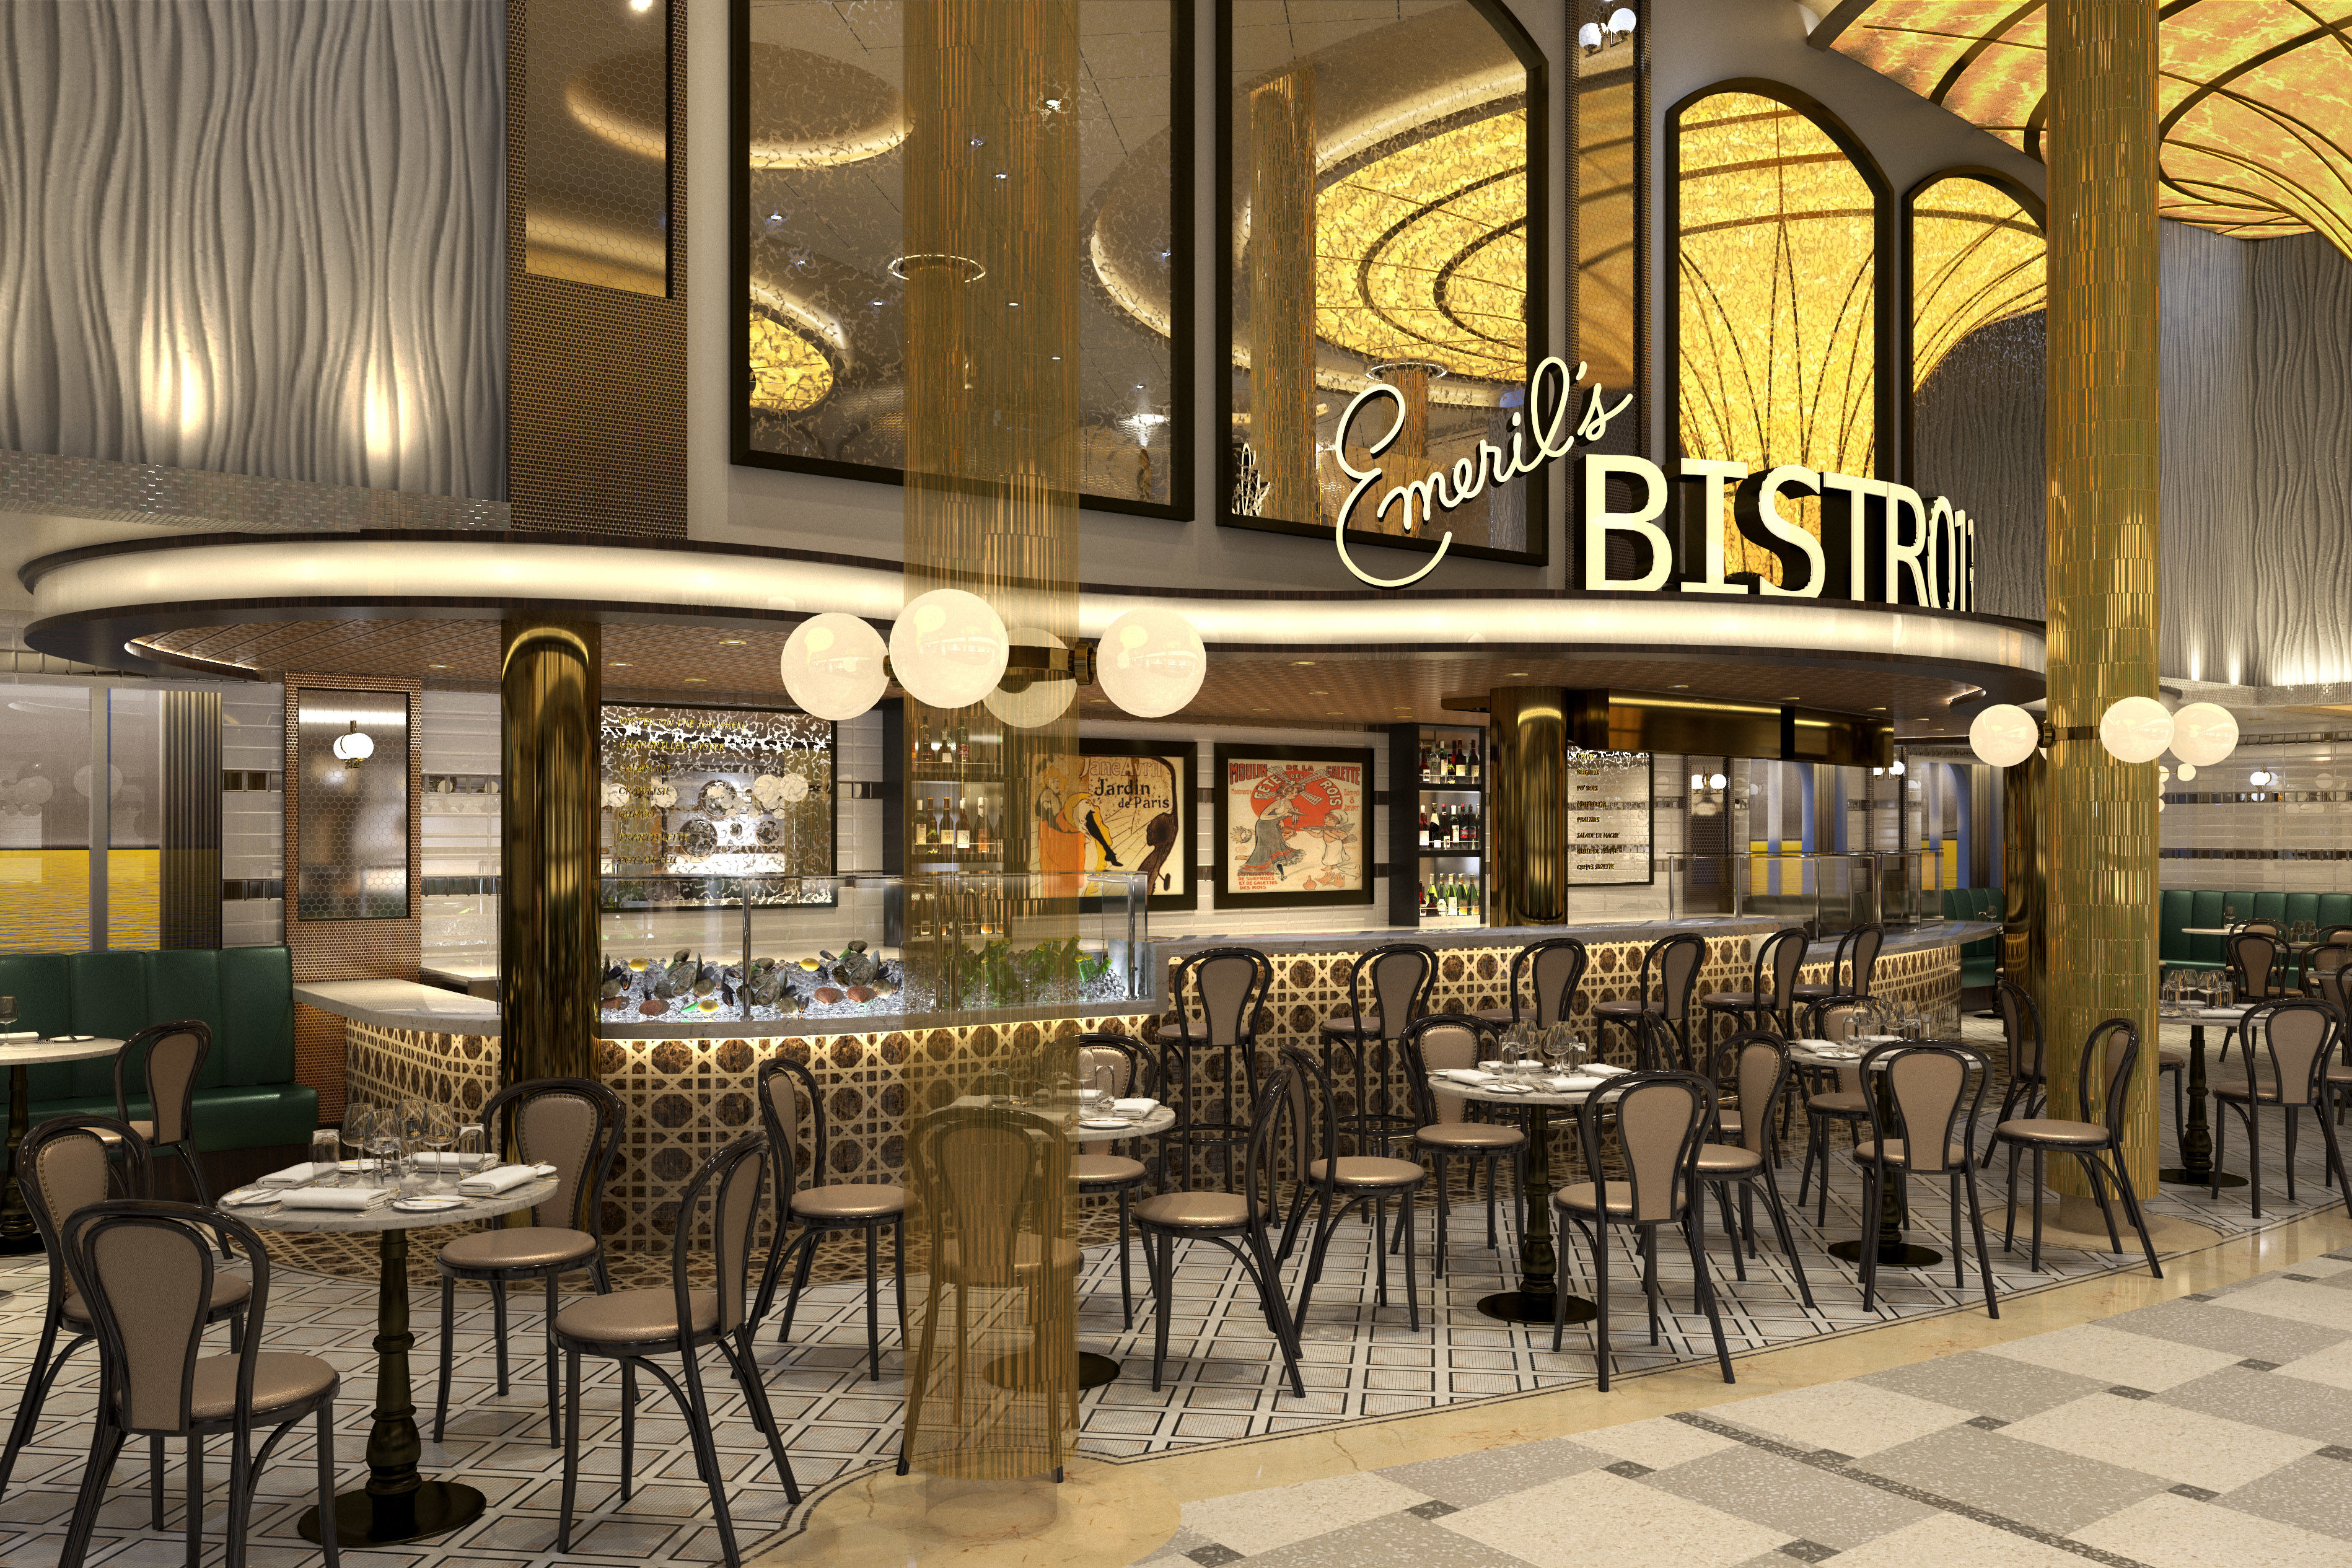 Emeril Lagasse Opens His First Restaurant at Sea With Carnival Cruise Line